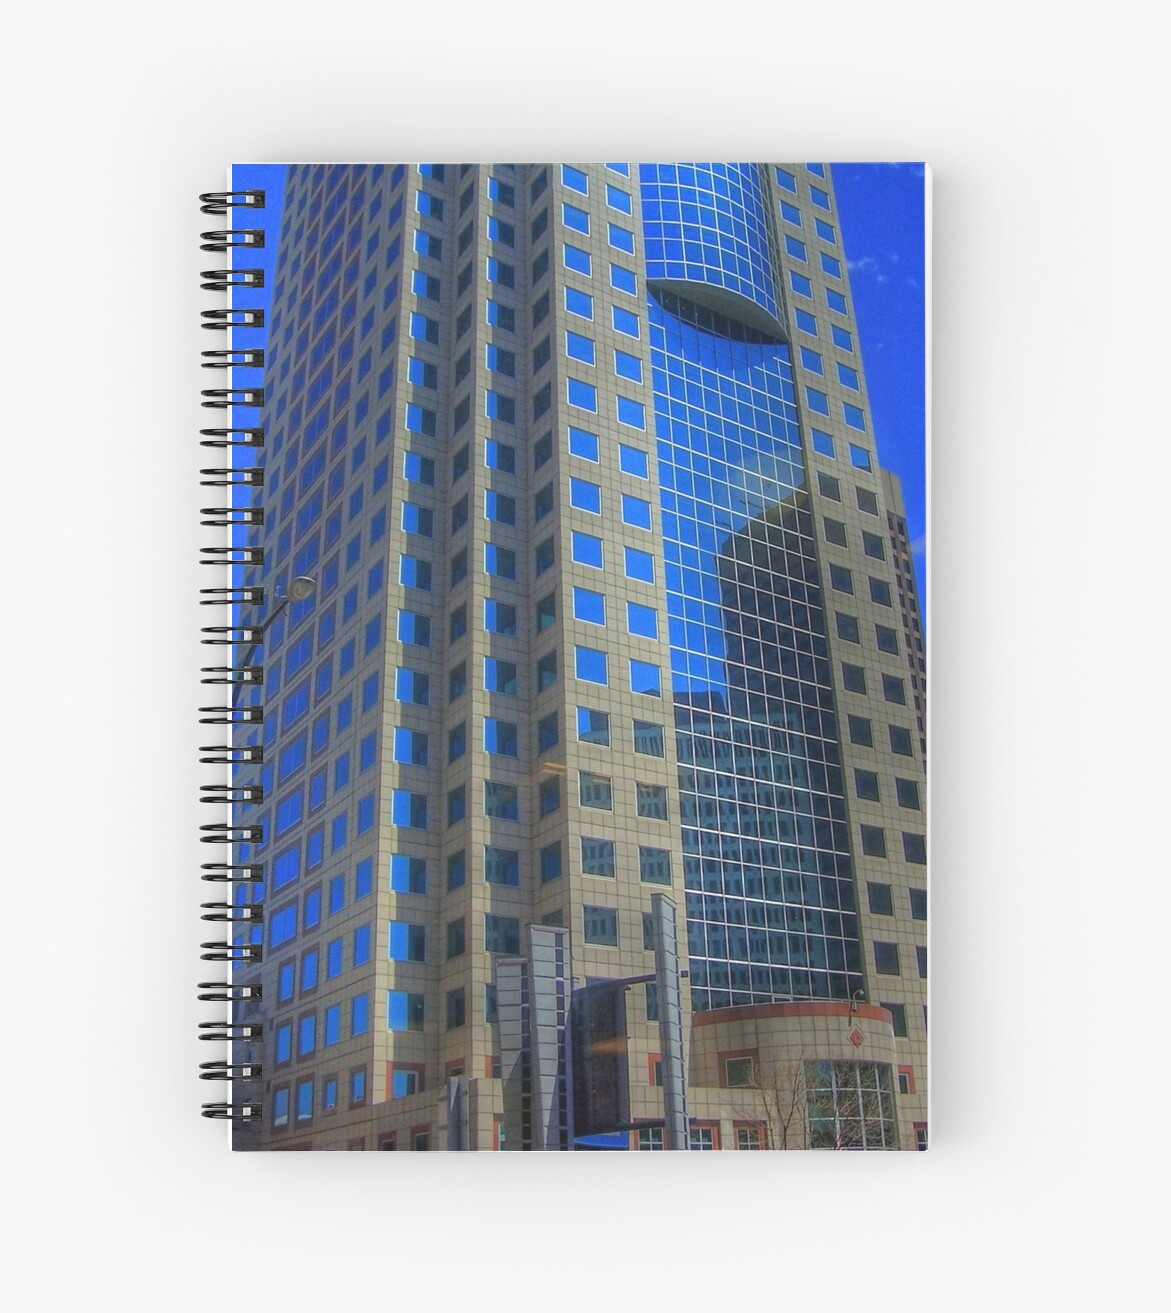 TD Bank Building by Larry Trupp